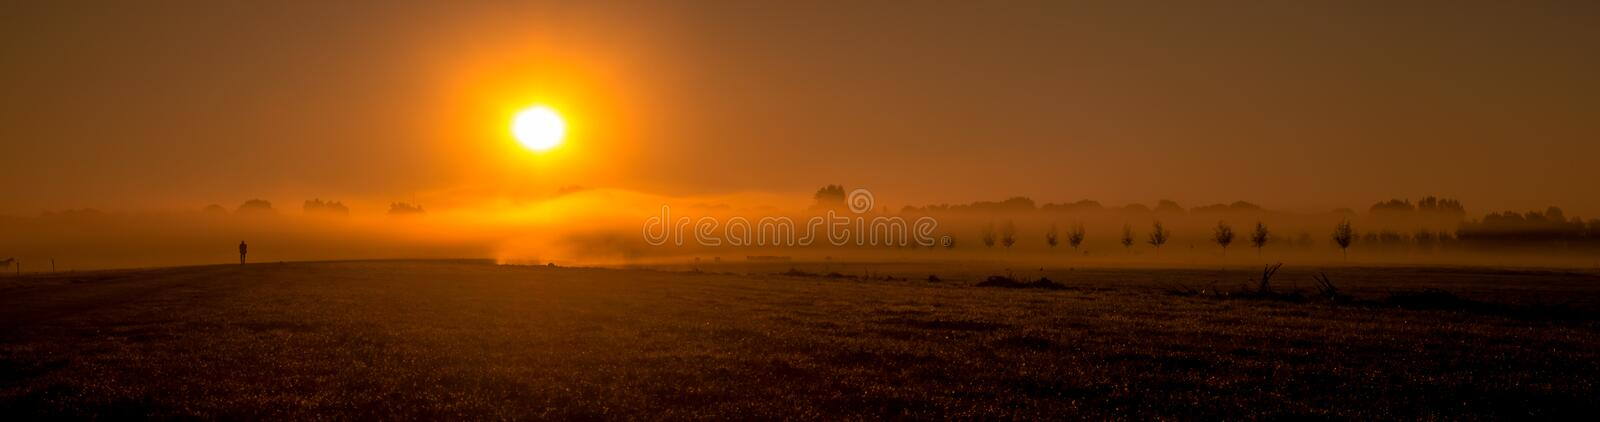 Brouillard au-dessus du champ photo stock